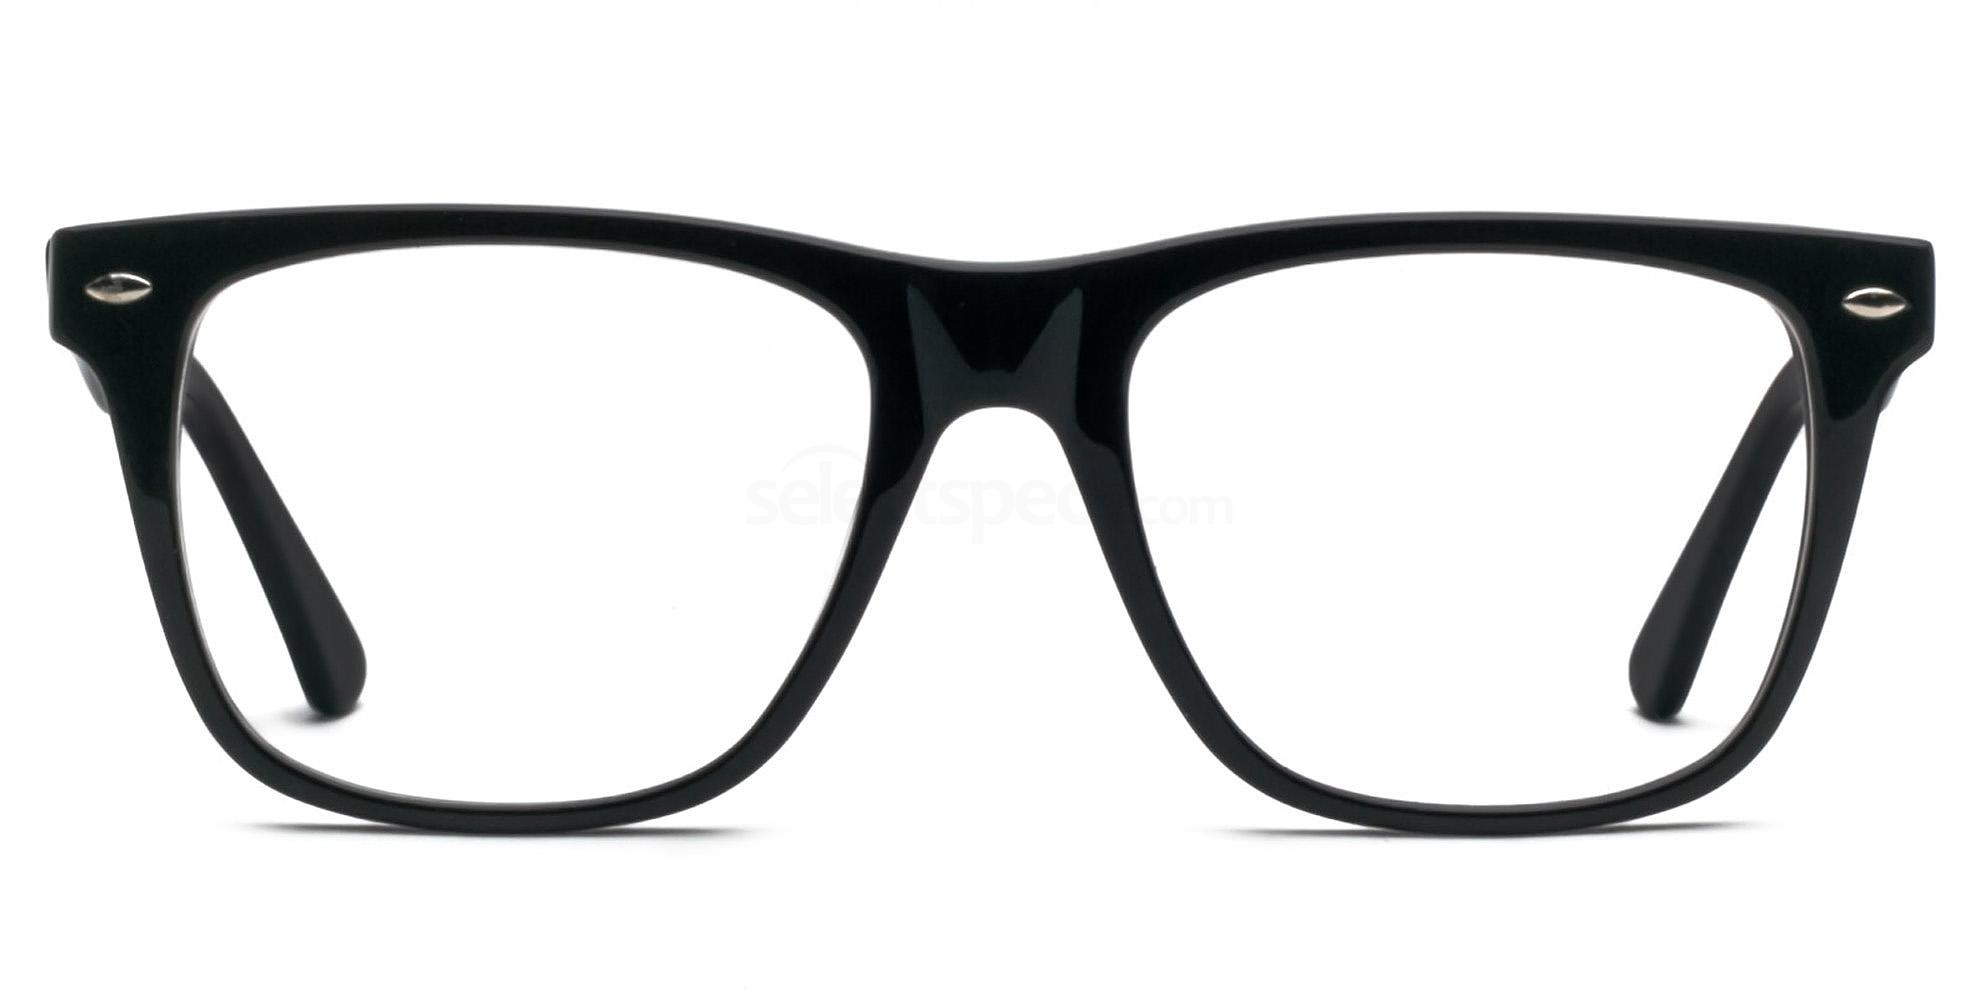 Hallmark 8812 Black framed prescription glasses